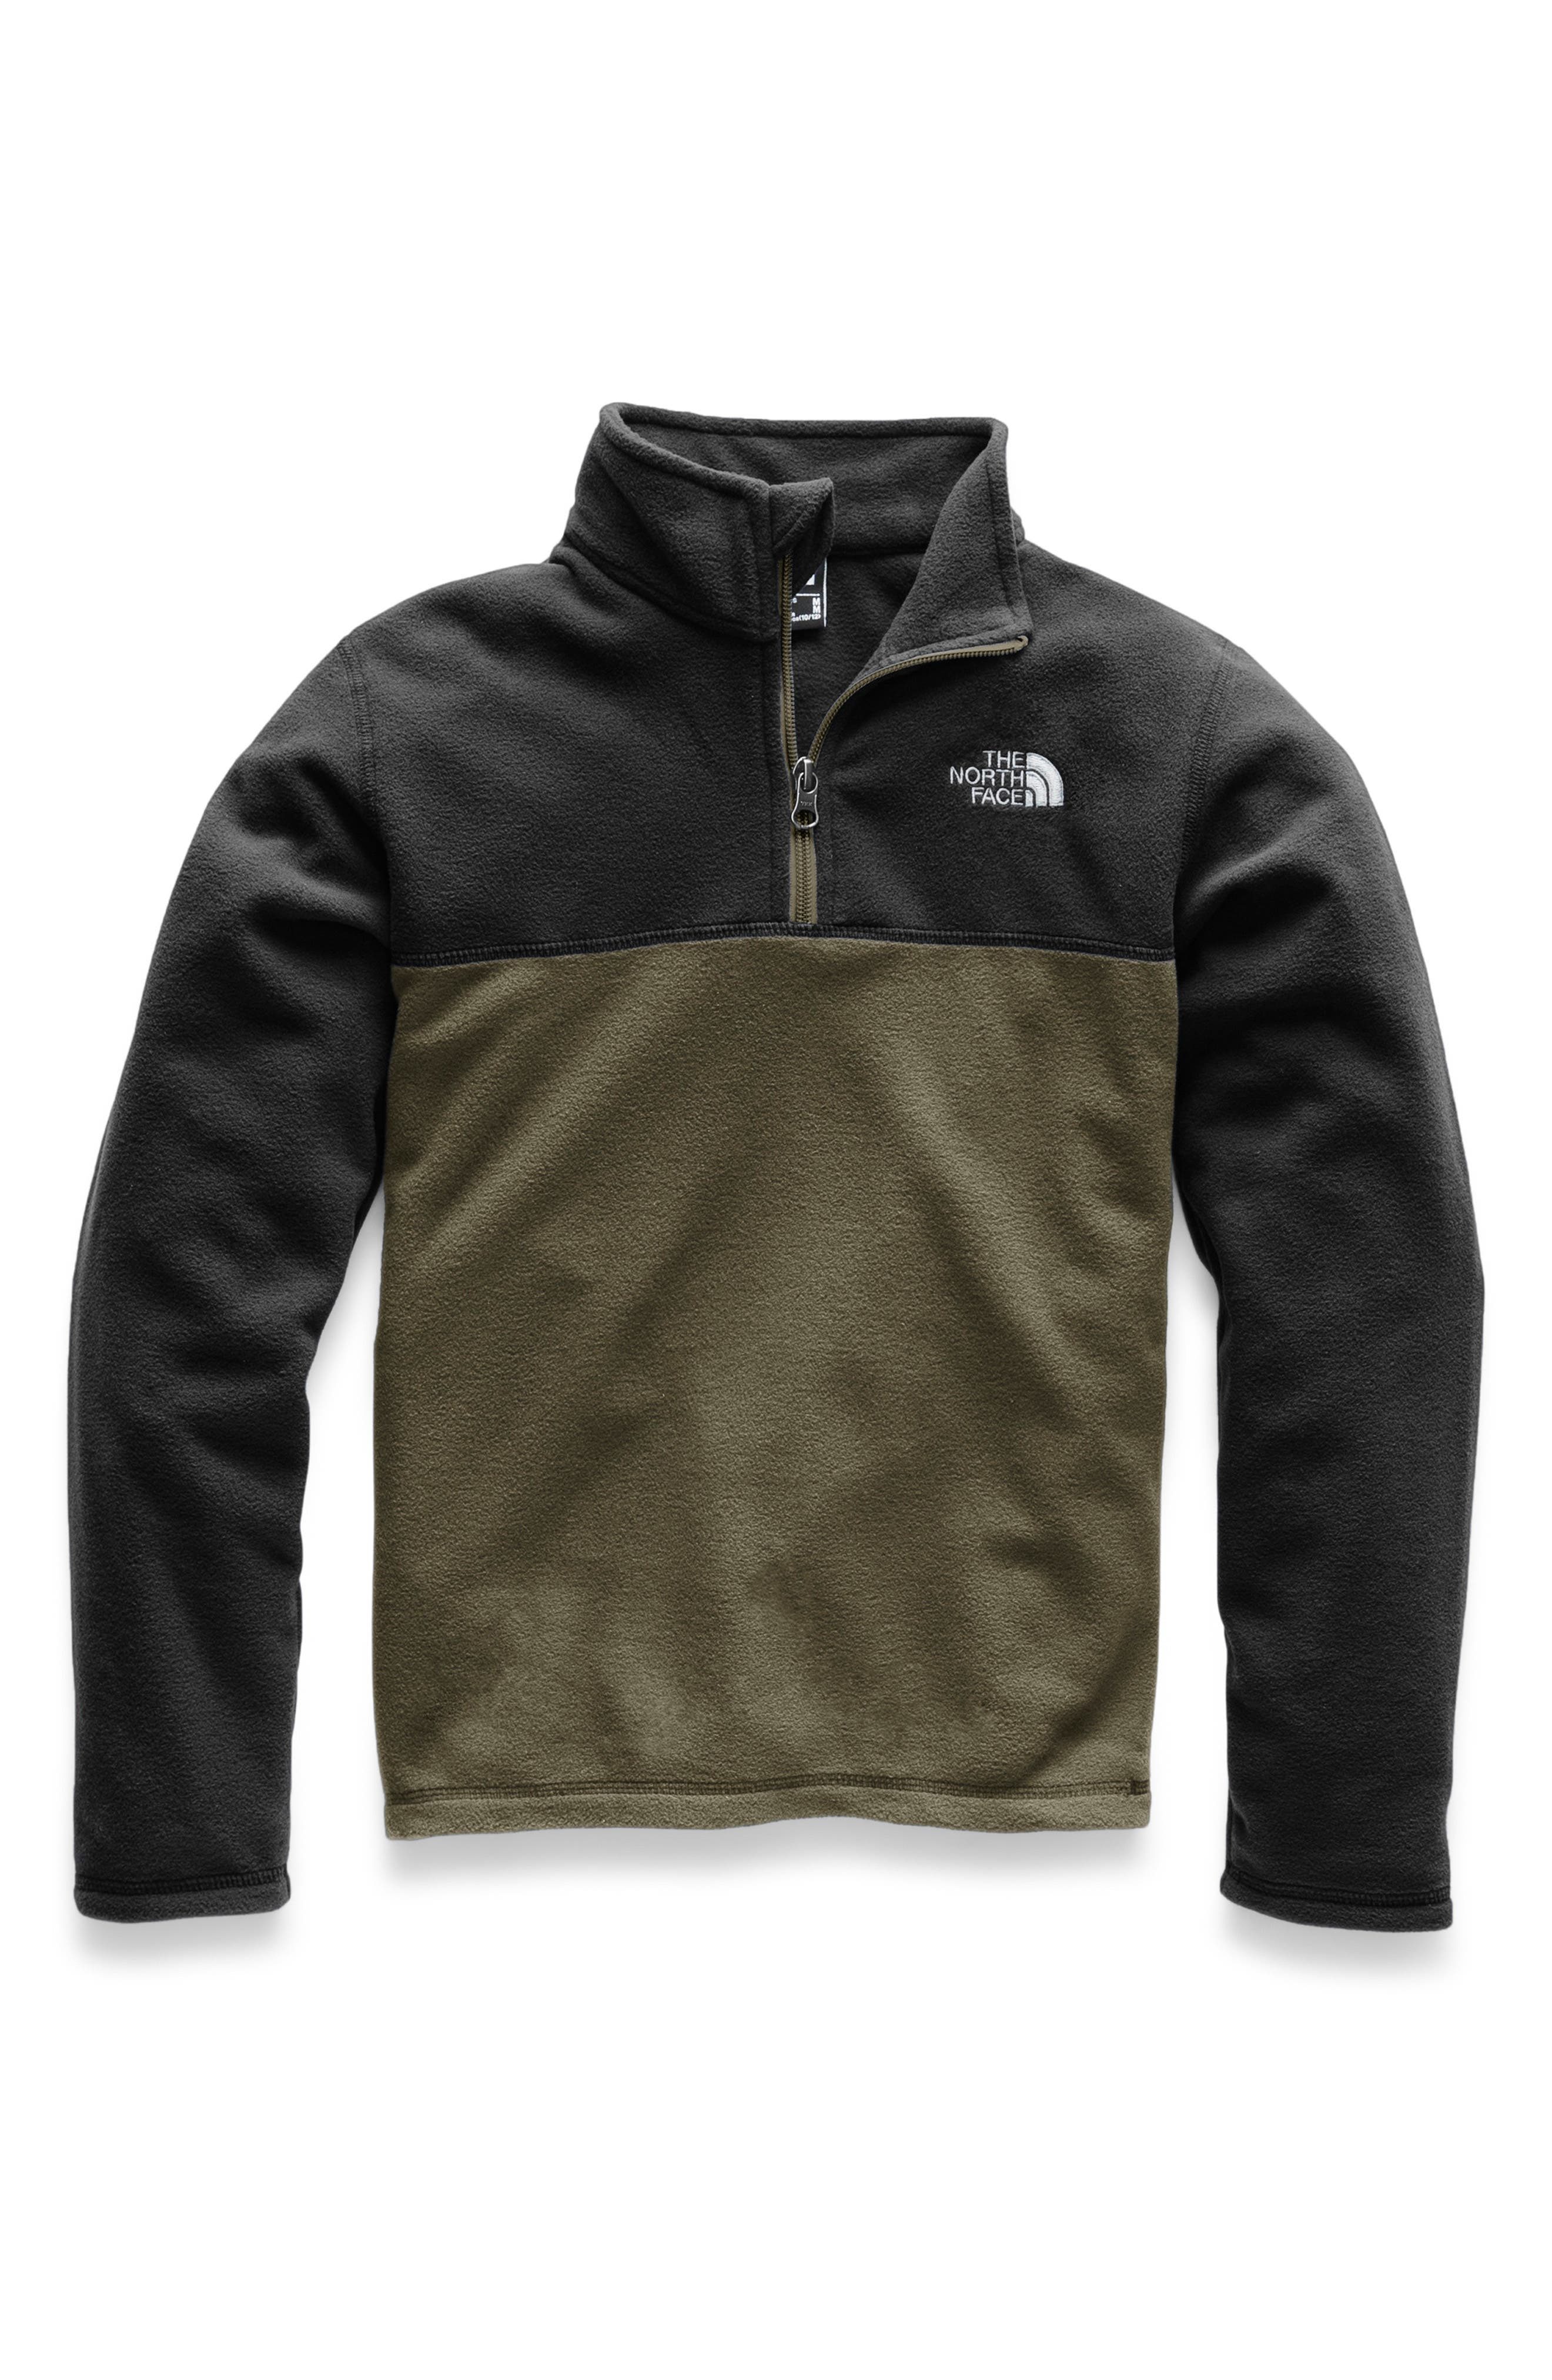 THE NORTH FACE Glacier Quarter Zip Pullover, Main, color, NEW TAUPE GREEN